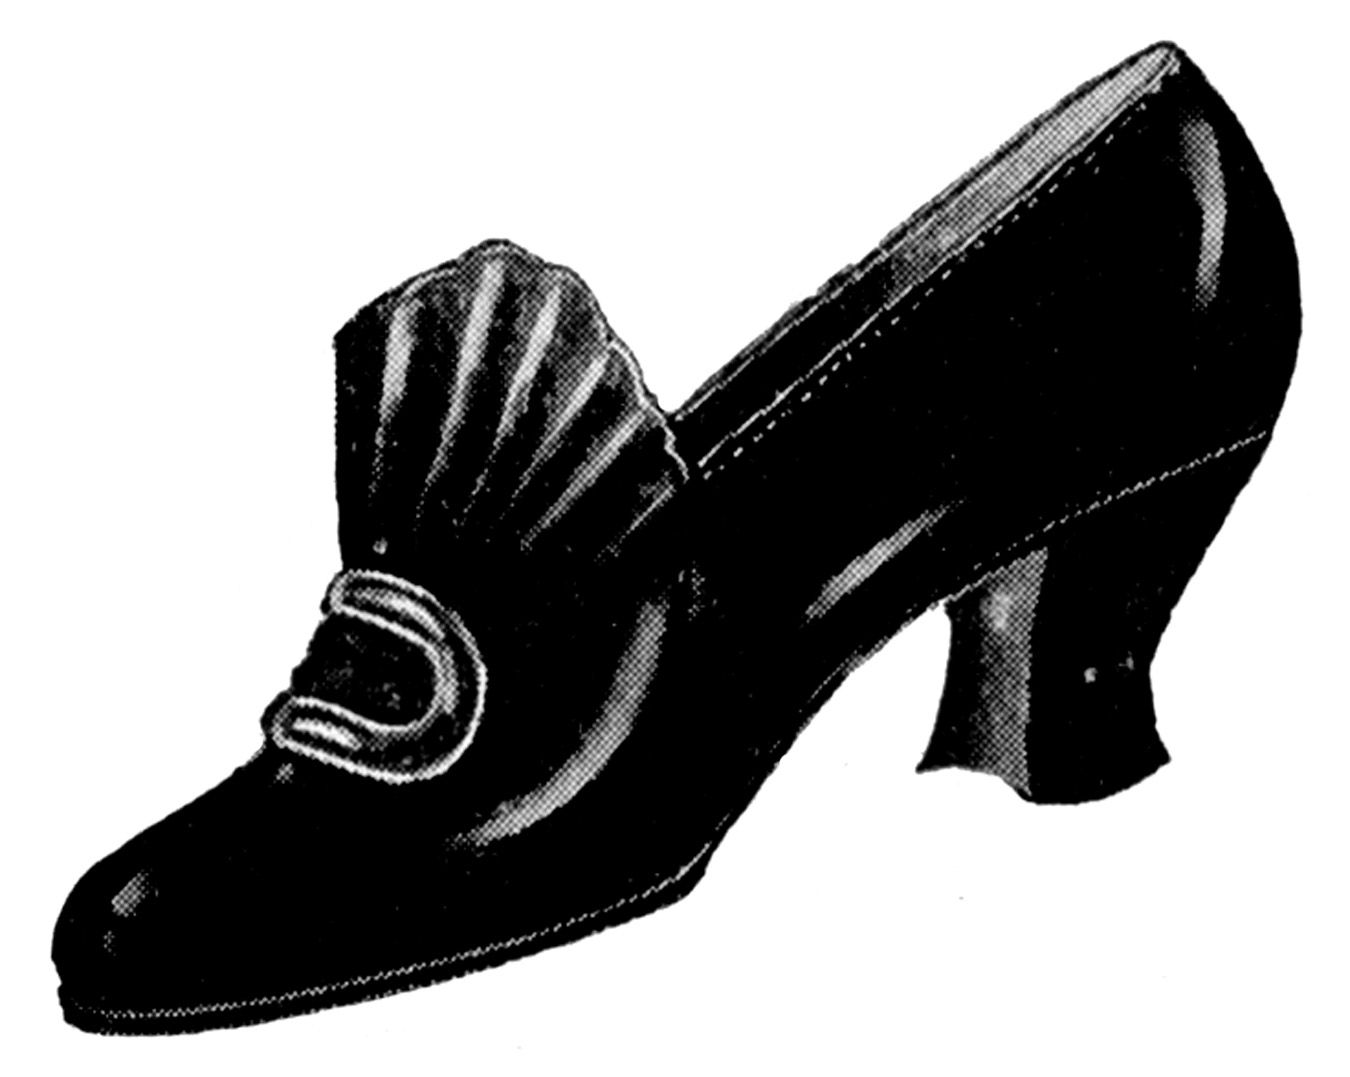 victorian clip art pretty ladies shoes the graphics fairy rh thegraphicsfairy com clip art shoes and boots clip art shoes images